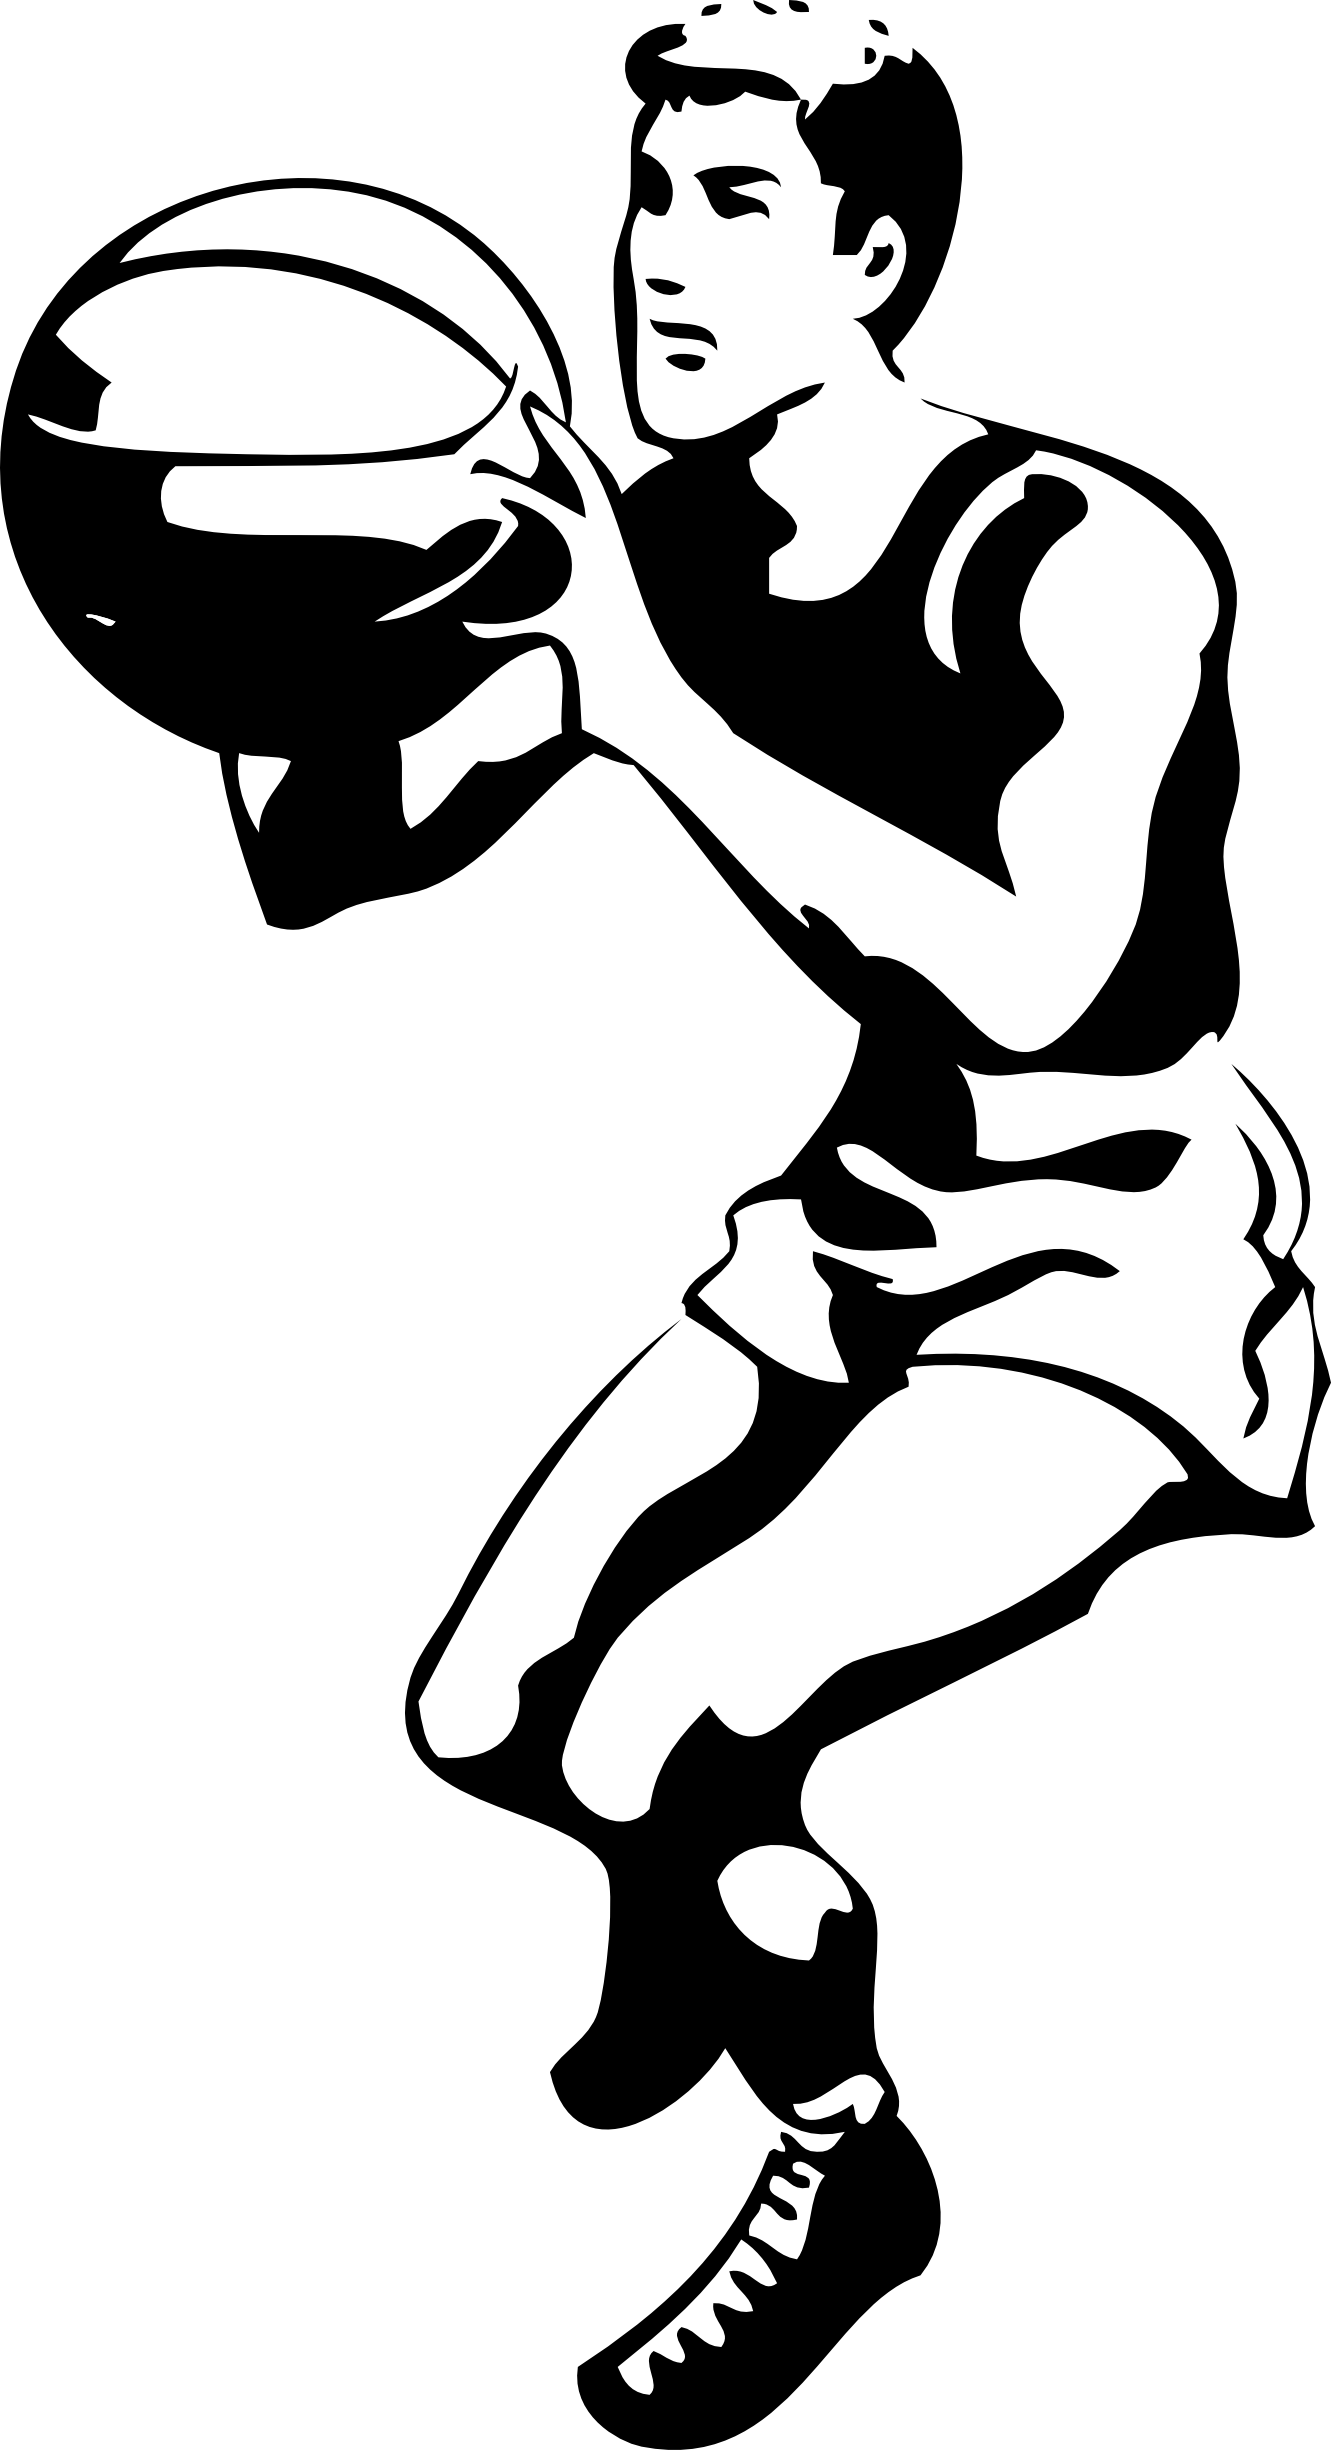 Kid playing on a basketball team clipart png transparent Basketball Player Clipart Black And White | Clipart Panda - Free ... png transparent